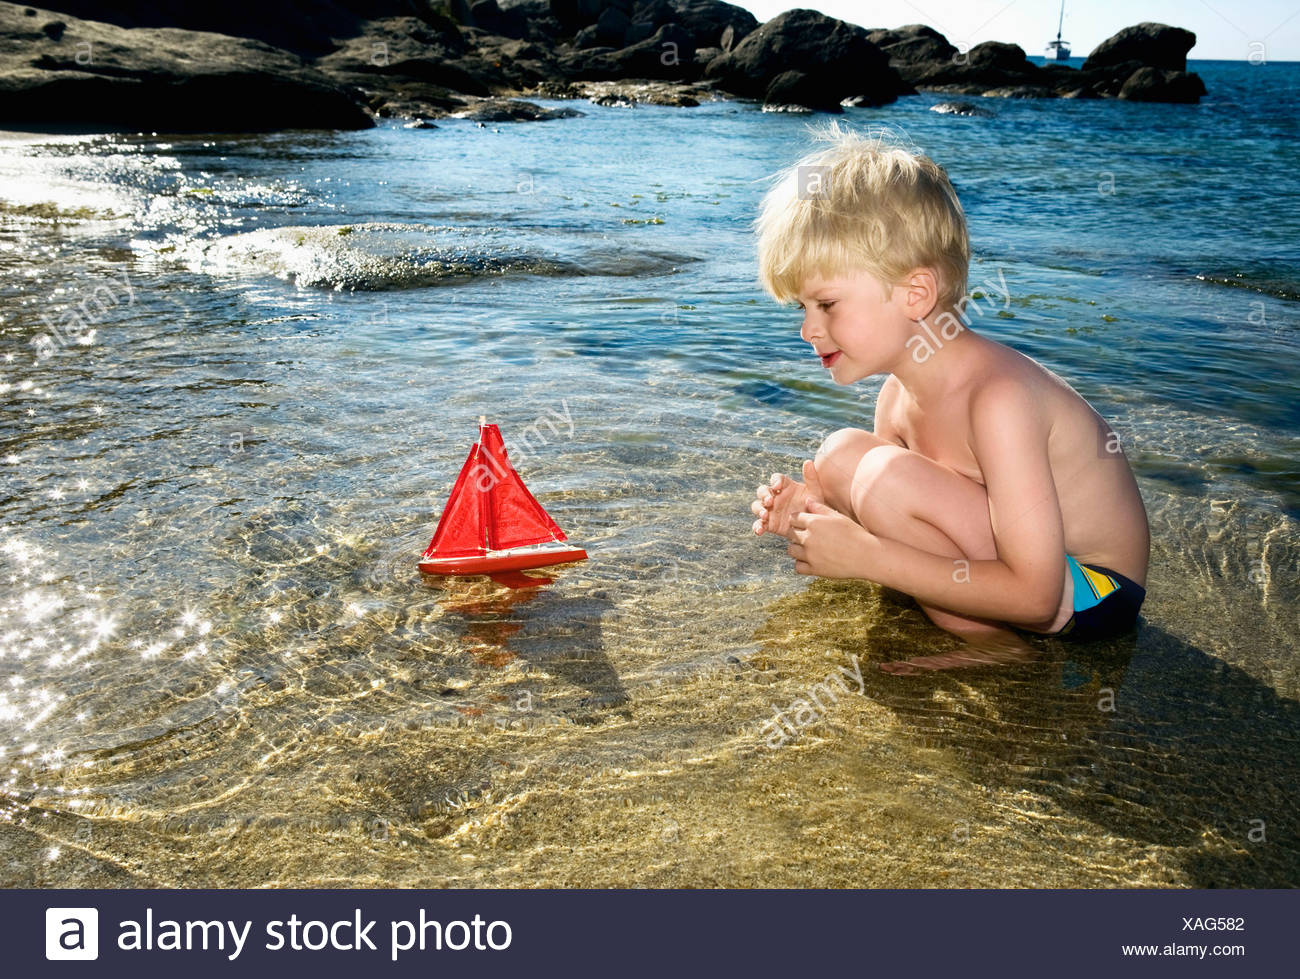 Young boy with a toy sailboat at the beach. Stock Photo